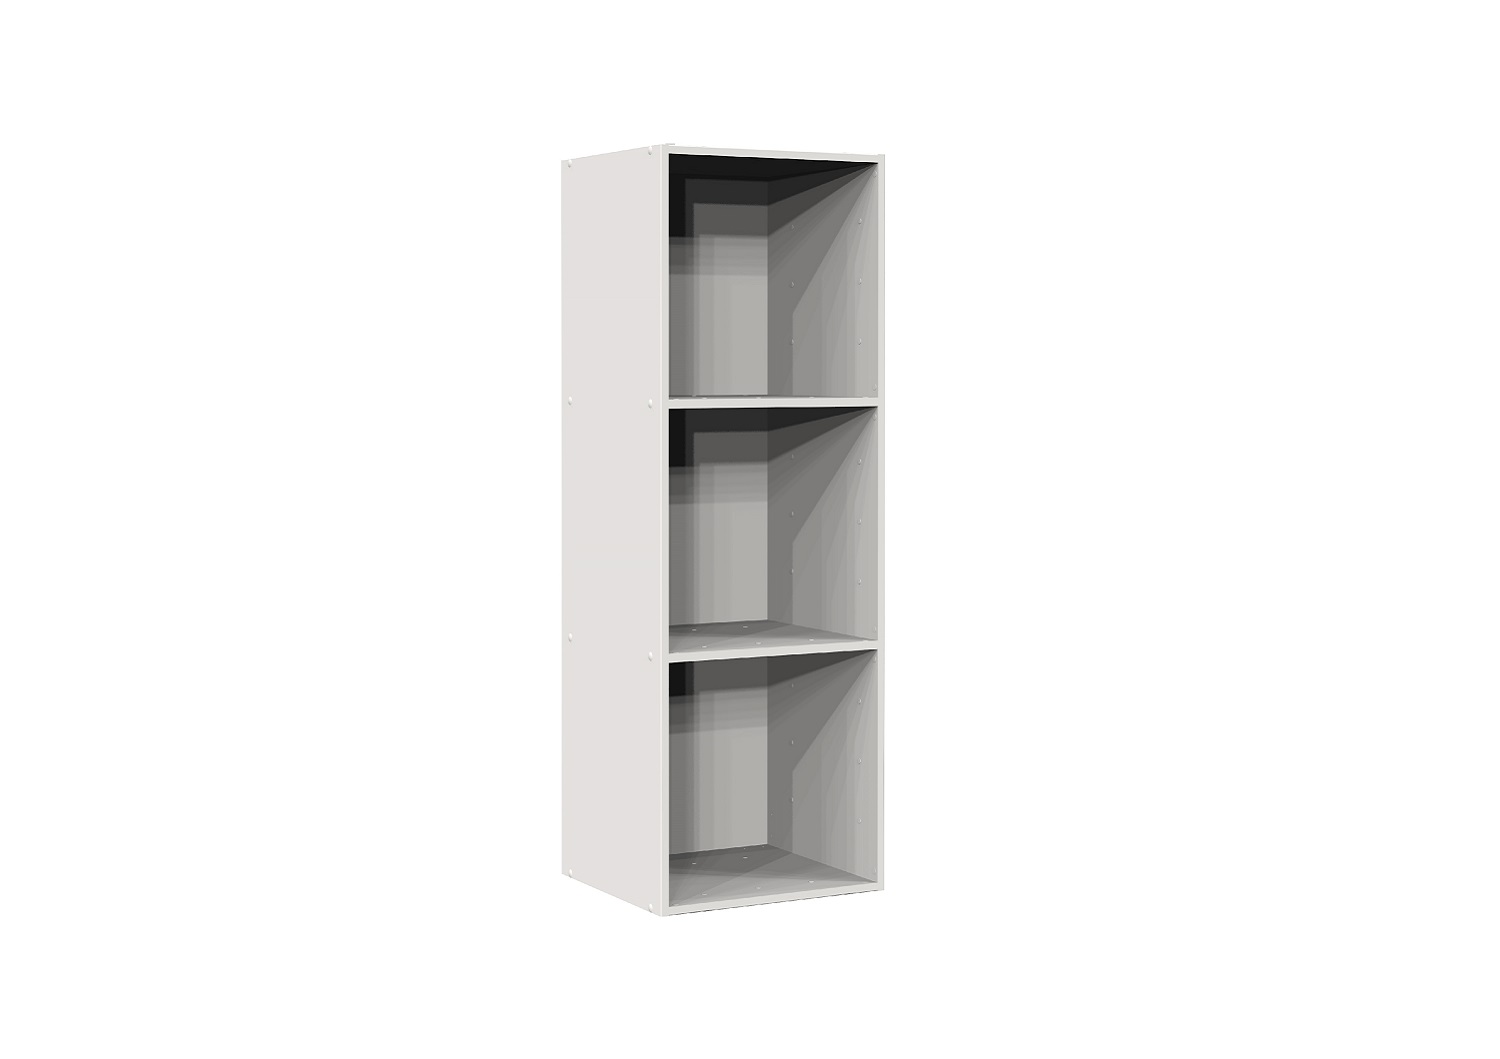 Bilrich Storage Furniture - Multi Kaz 3x1 Cube White